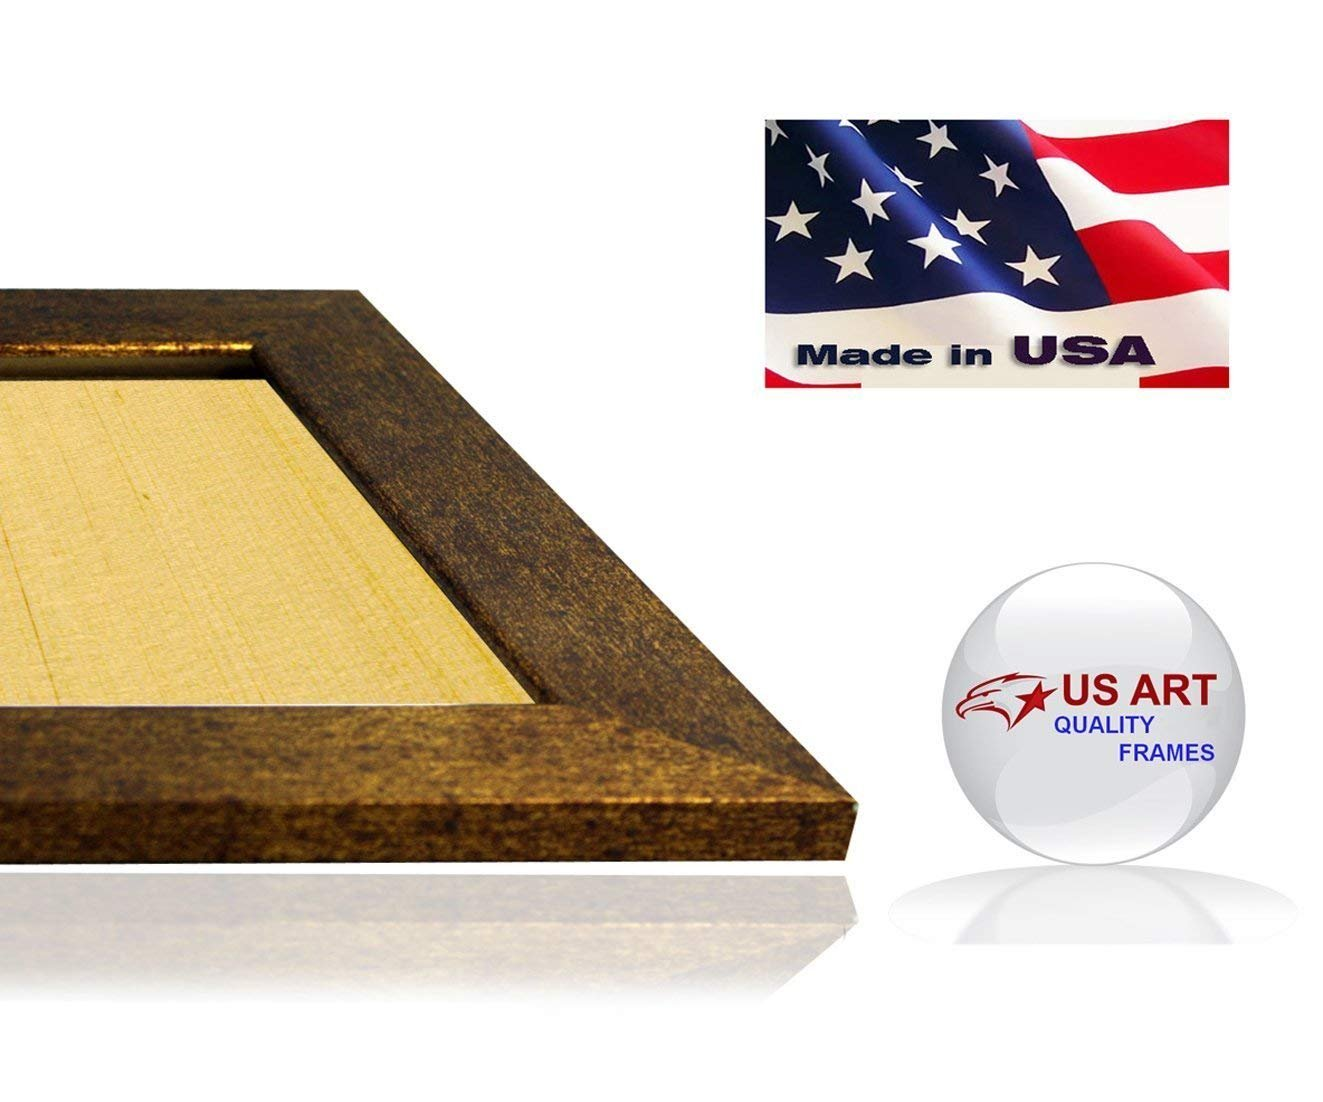 US Art Frames 23x32 Brushed Copper Brass Finish Flat 1.5 Inch, MDF Wood Composite, Picture Poster Frame